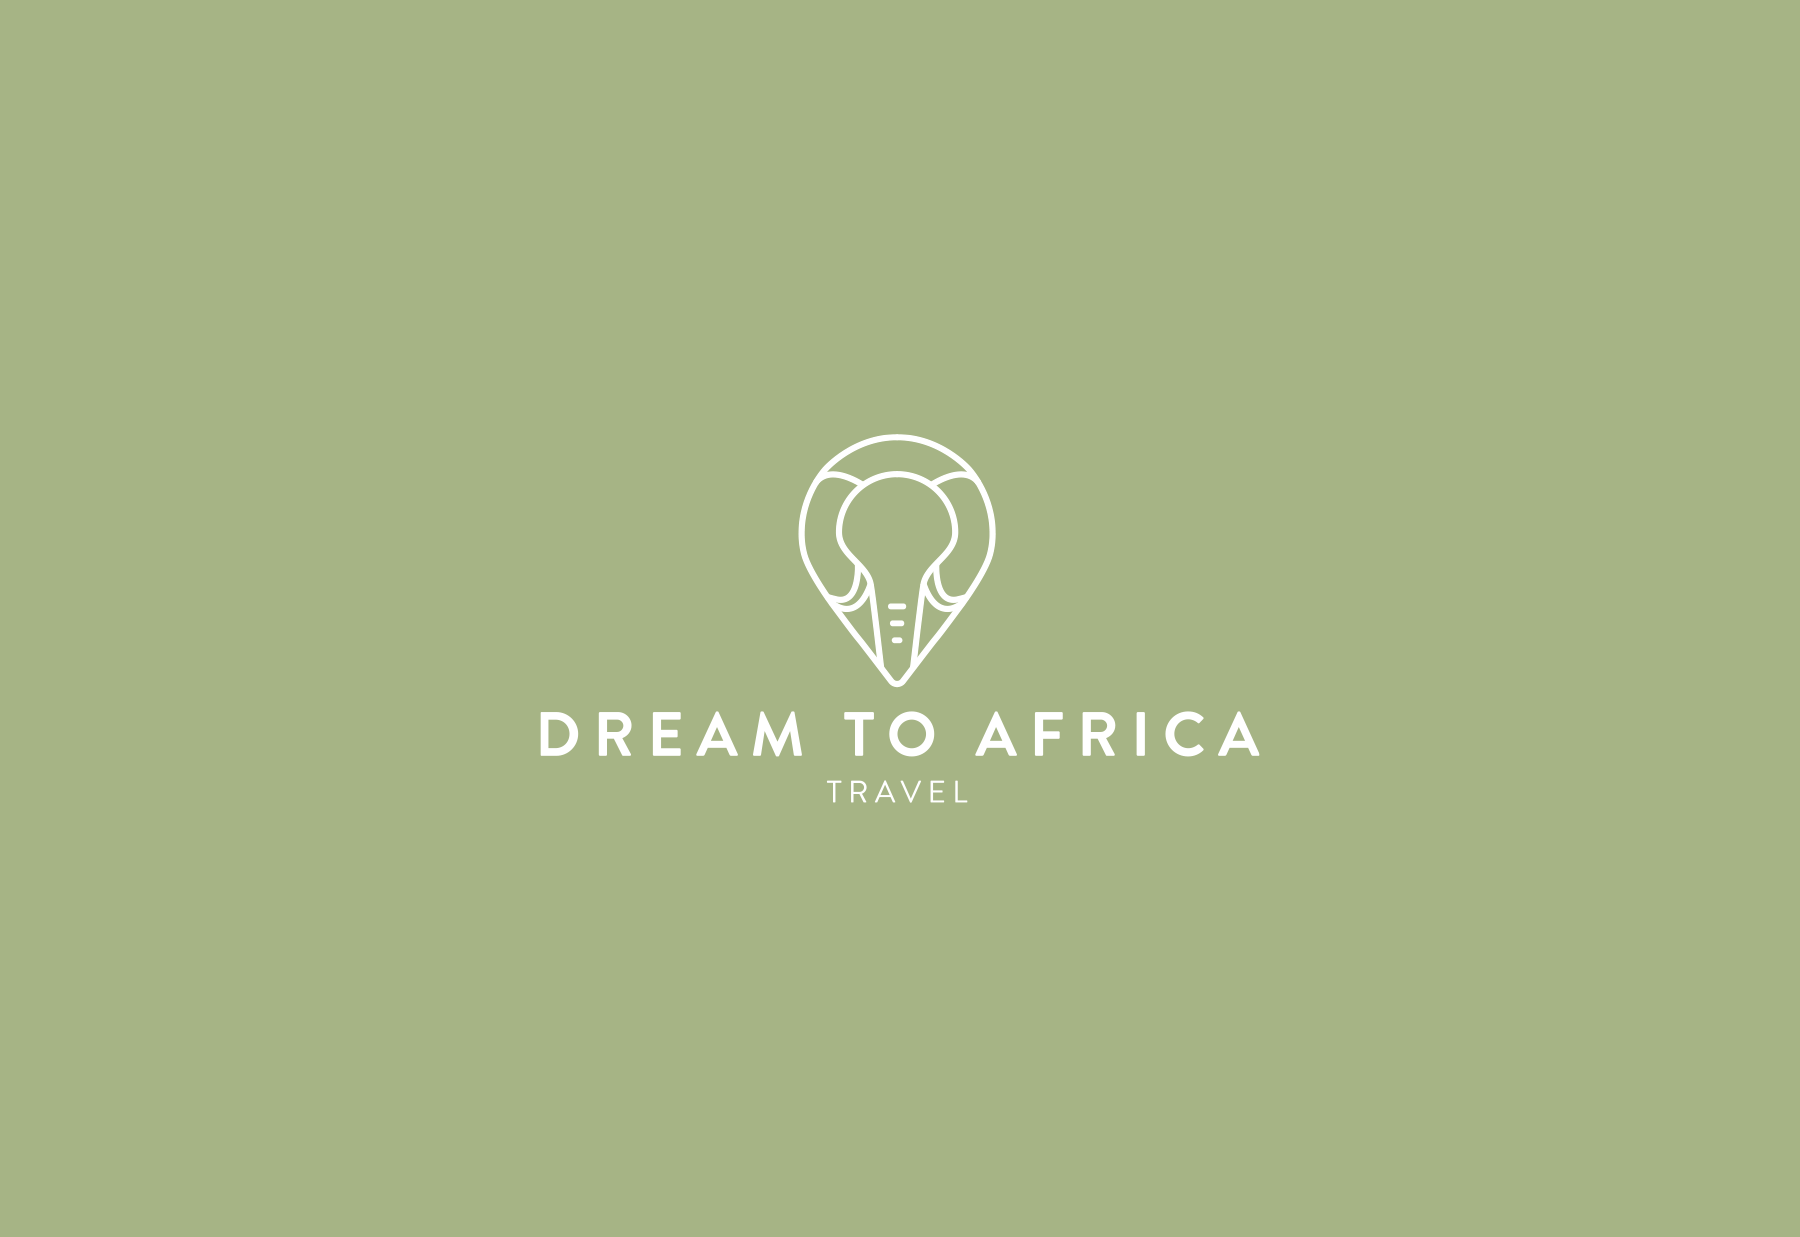 Logo designed for bespoke African travel company, Dream to Africa